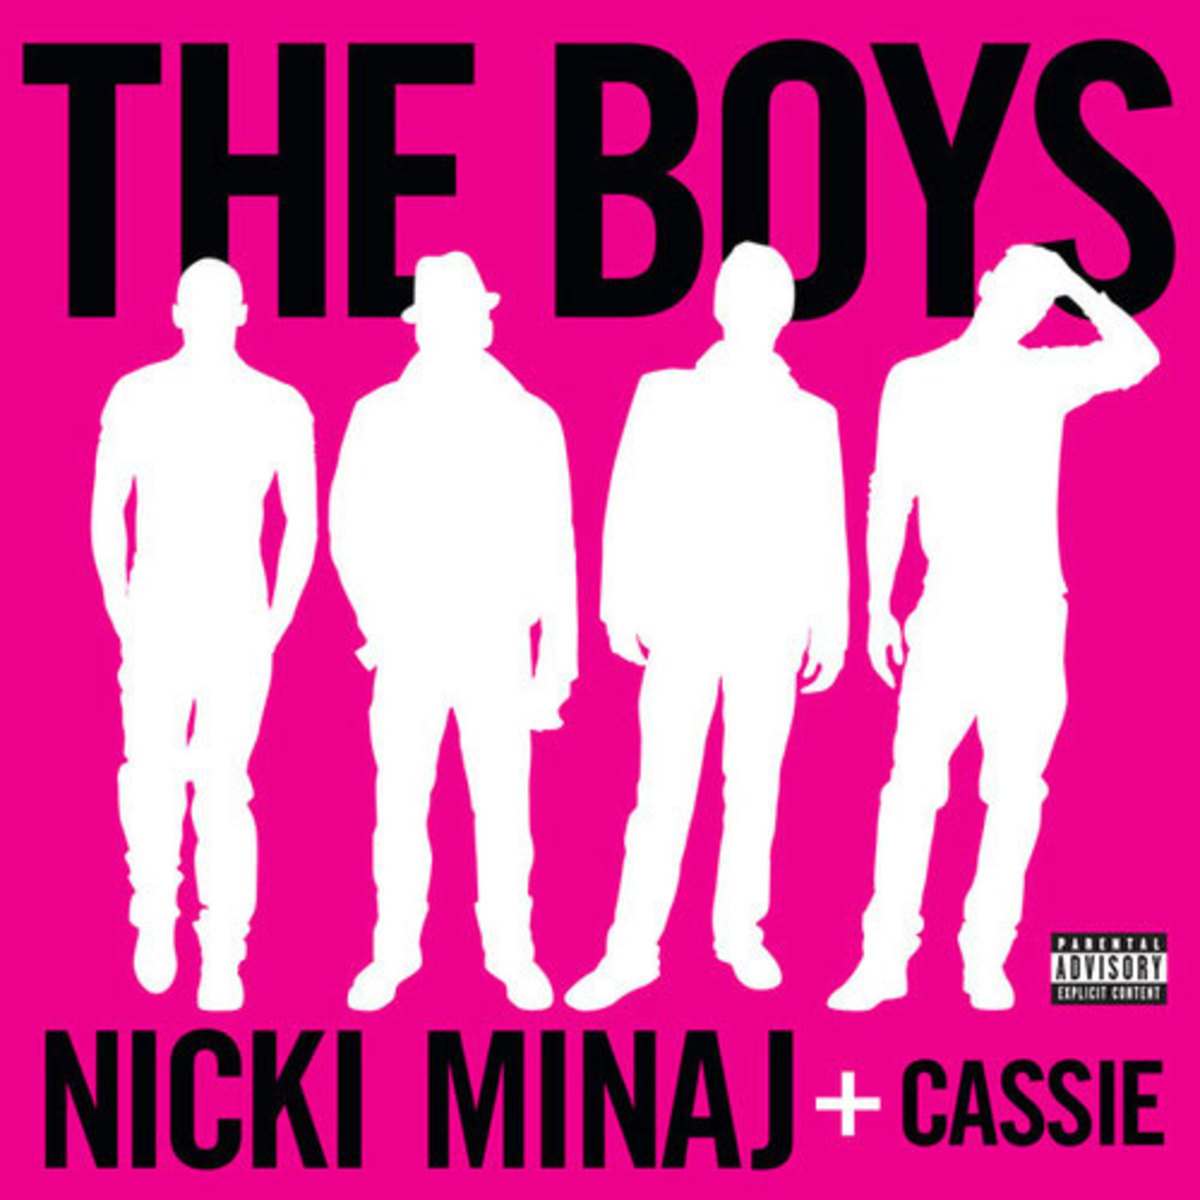 nickiminaj-boys.jpg